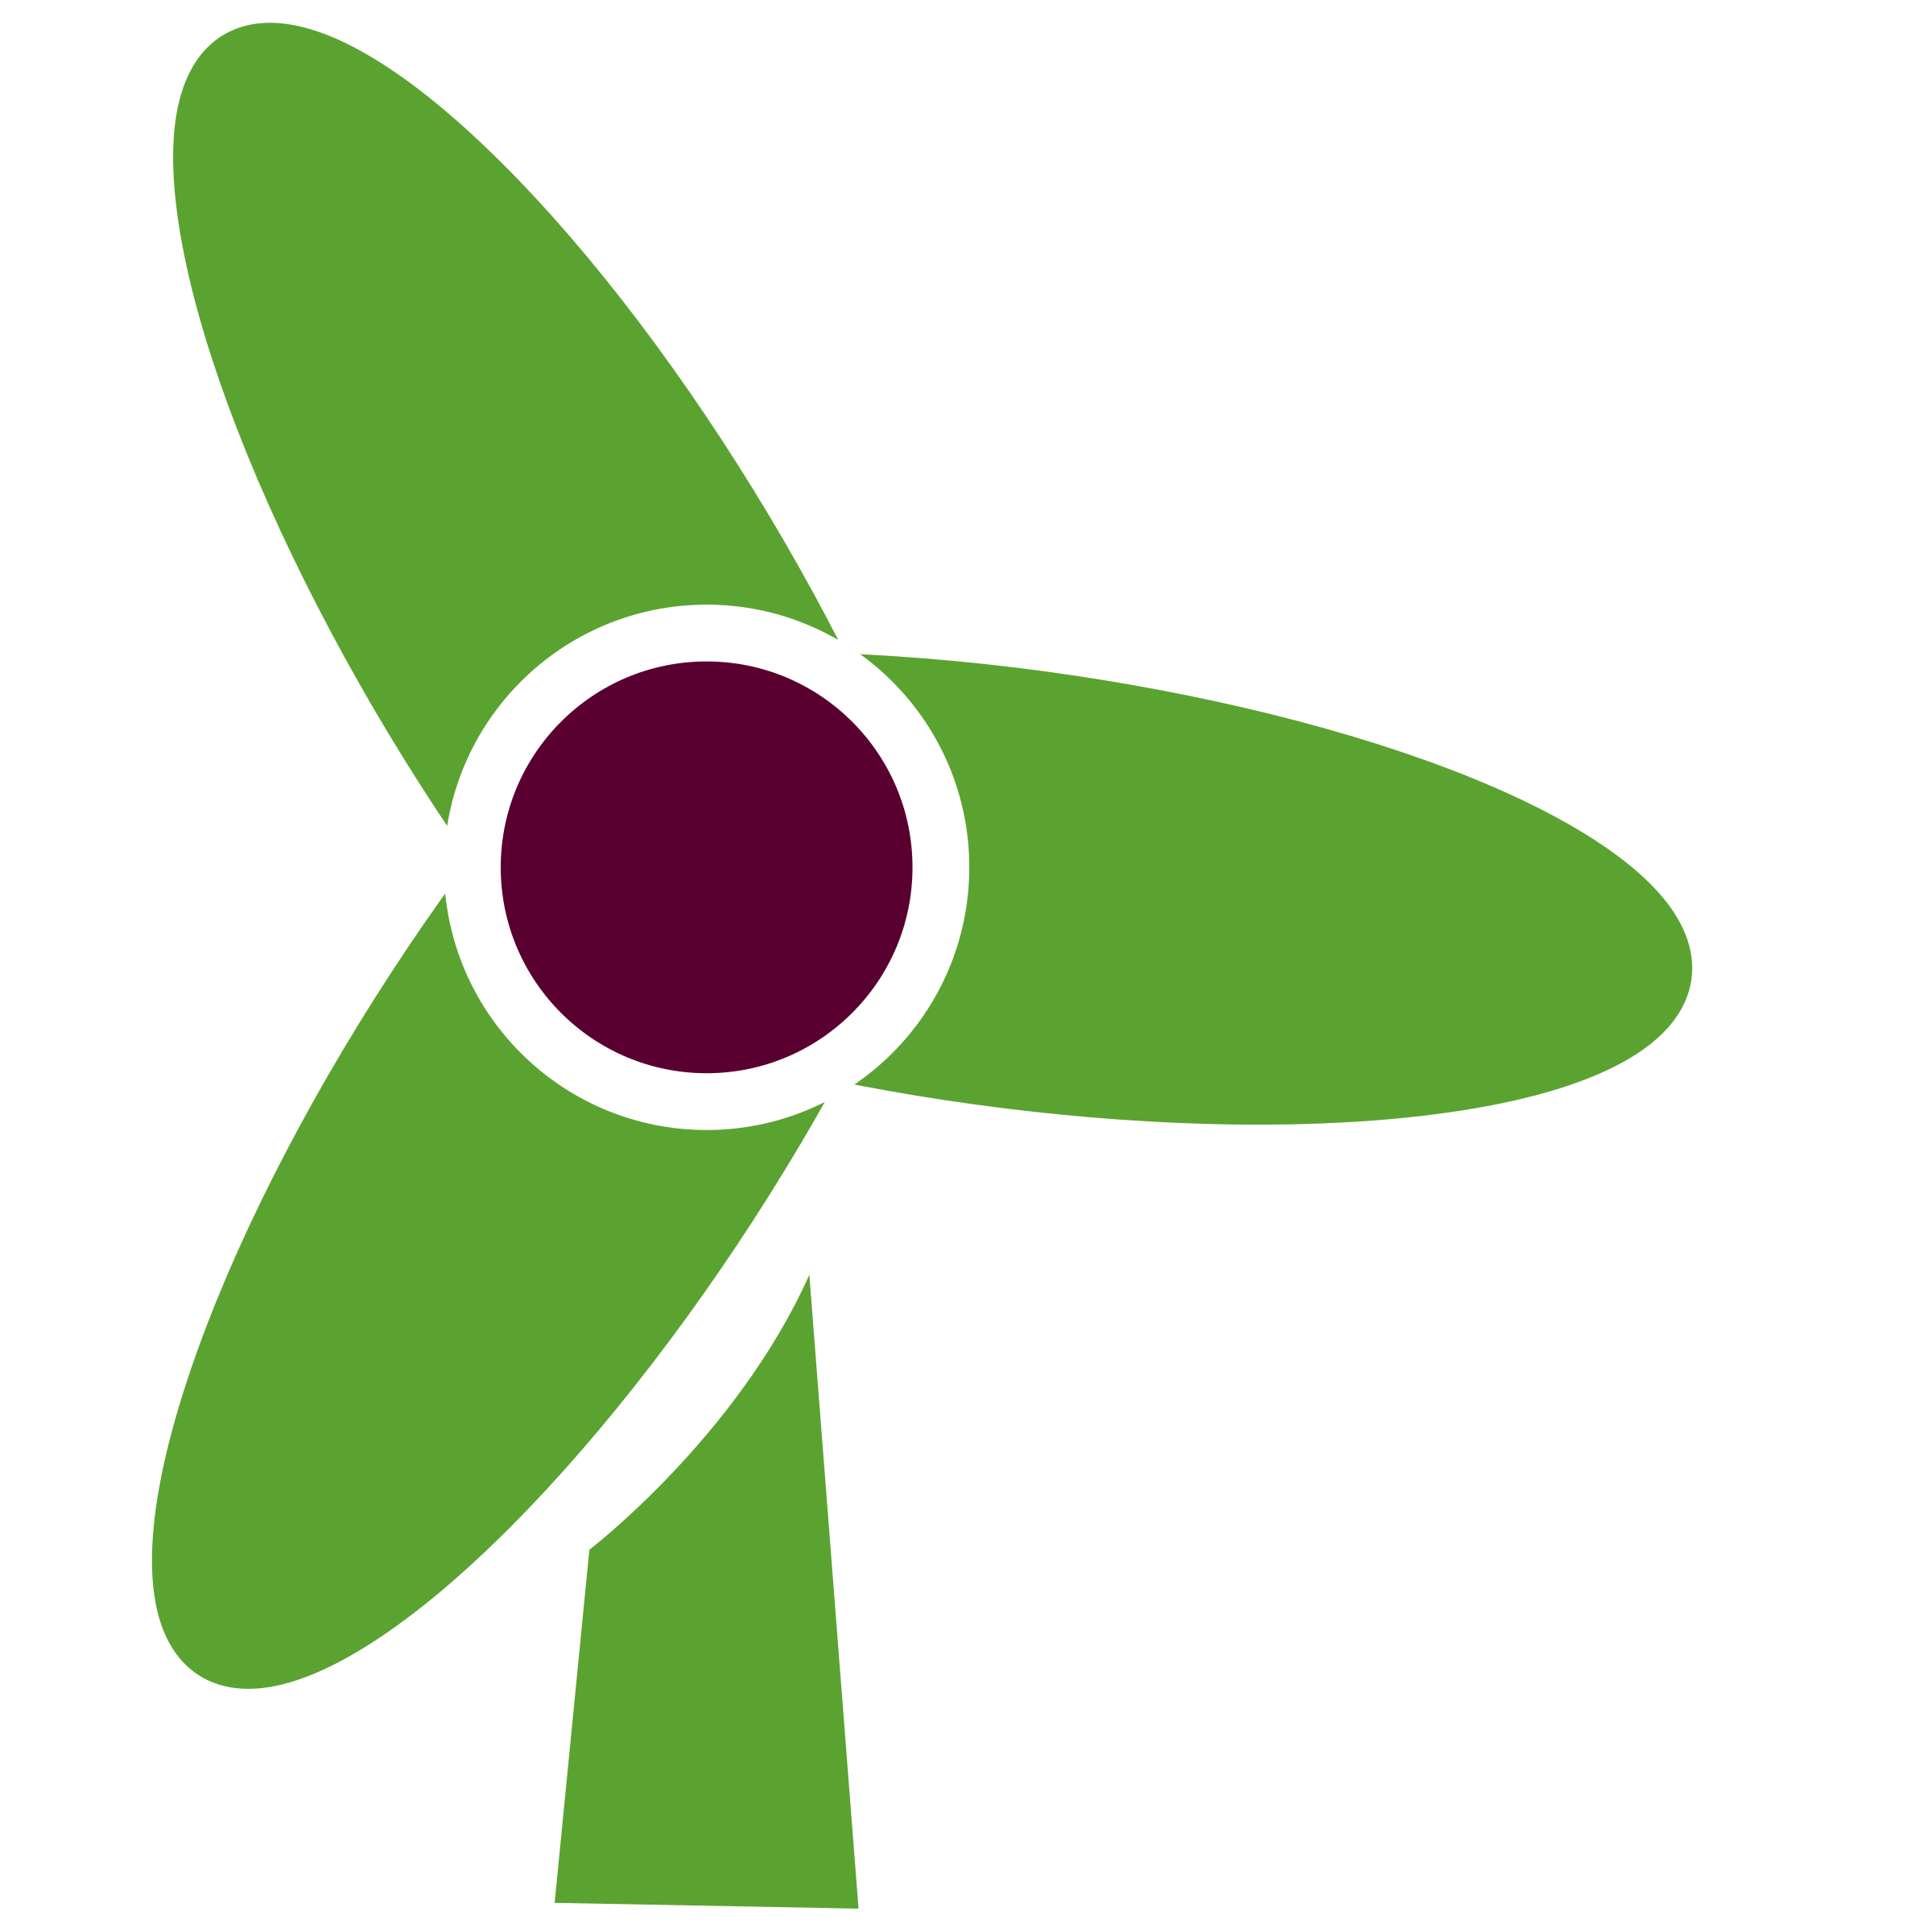 2400x2400 Clipart Wind Turbine